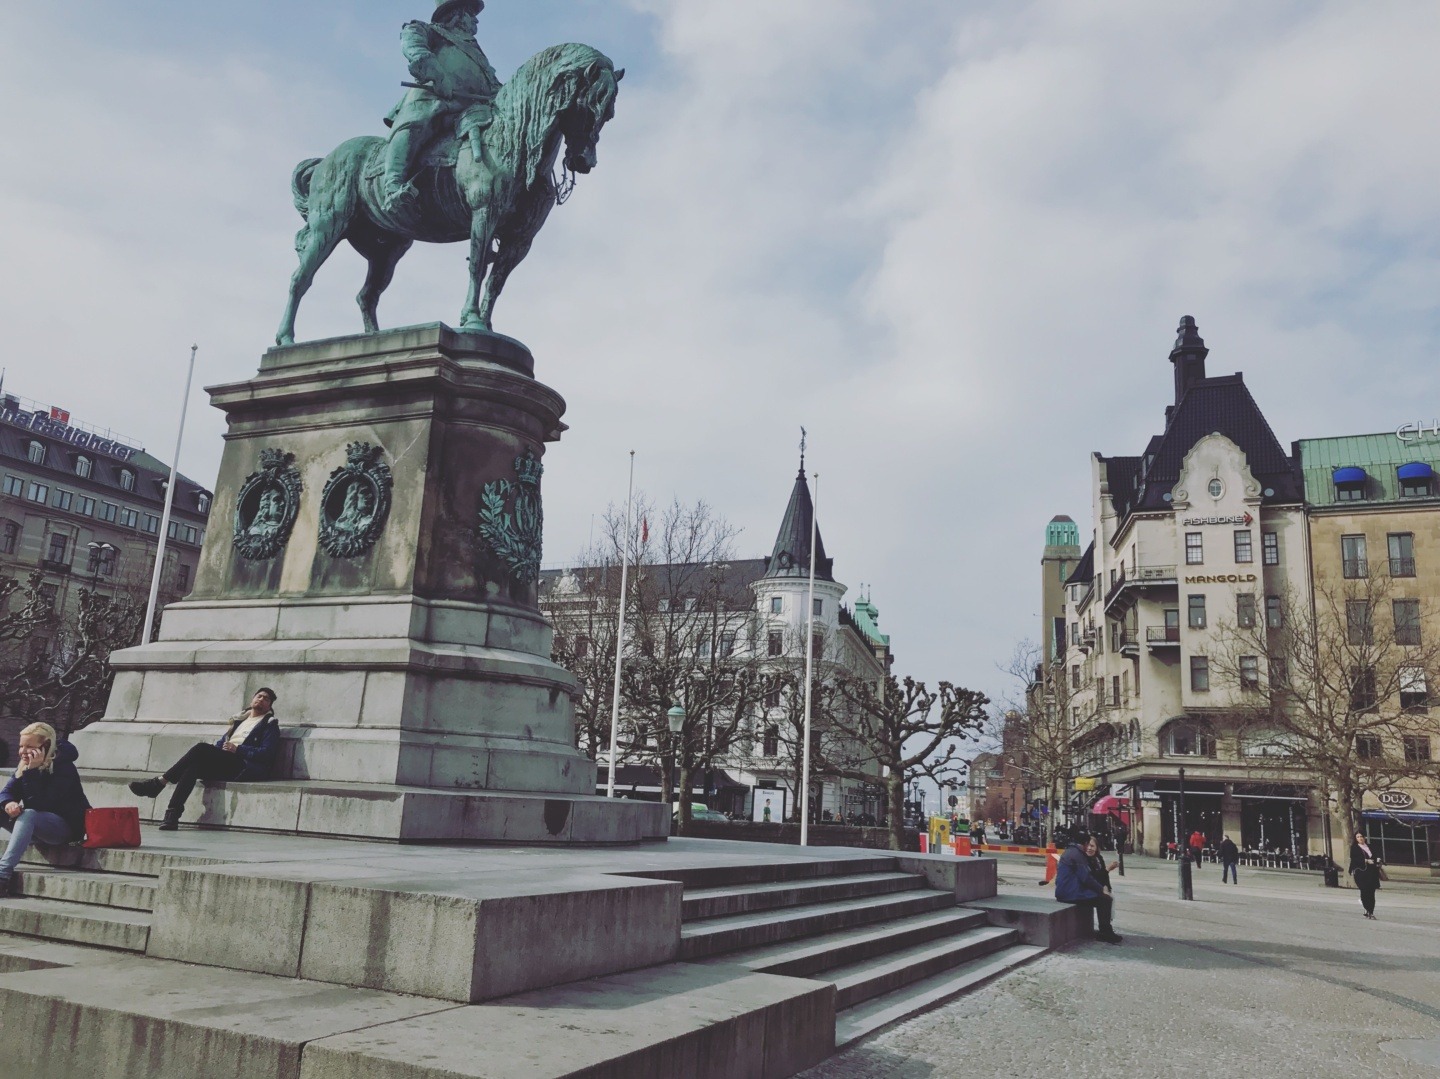 Wanderlust bee - Daytripping to Malmo, Sweden